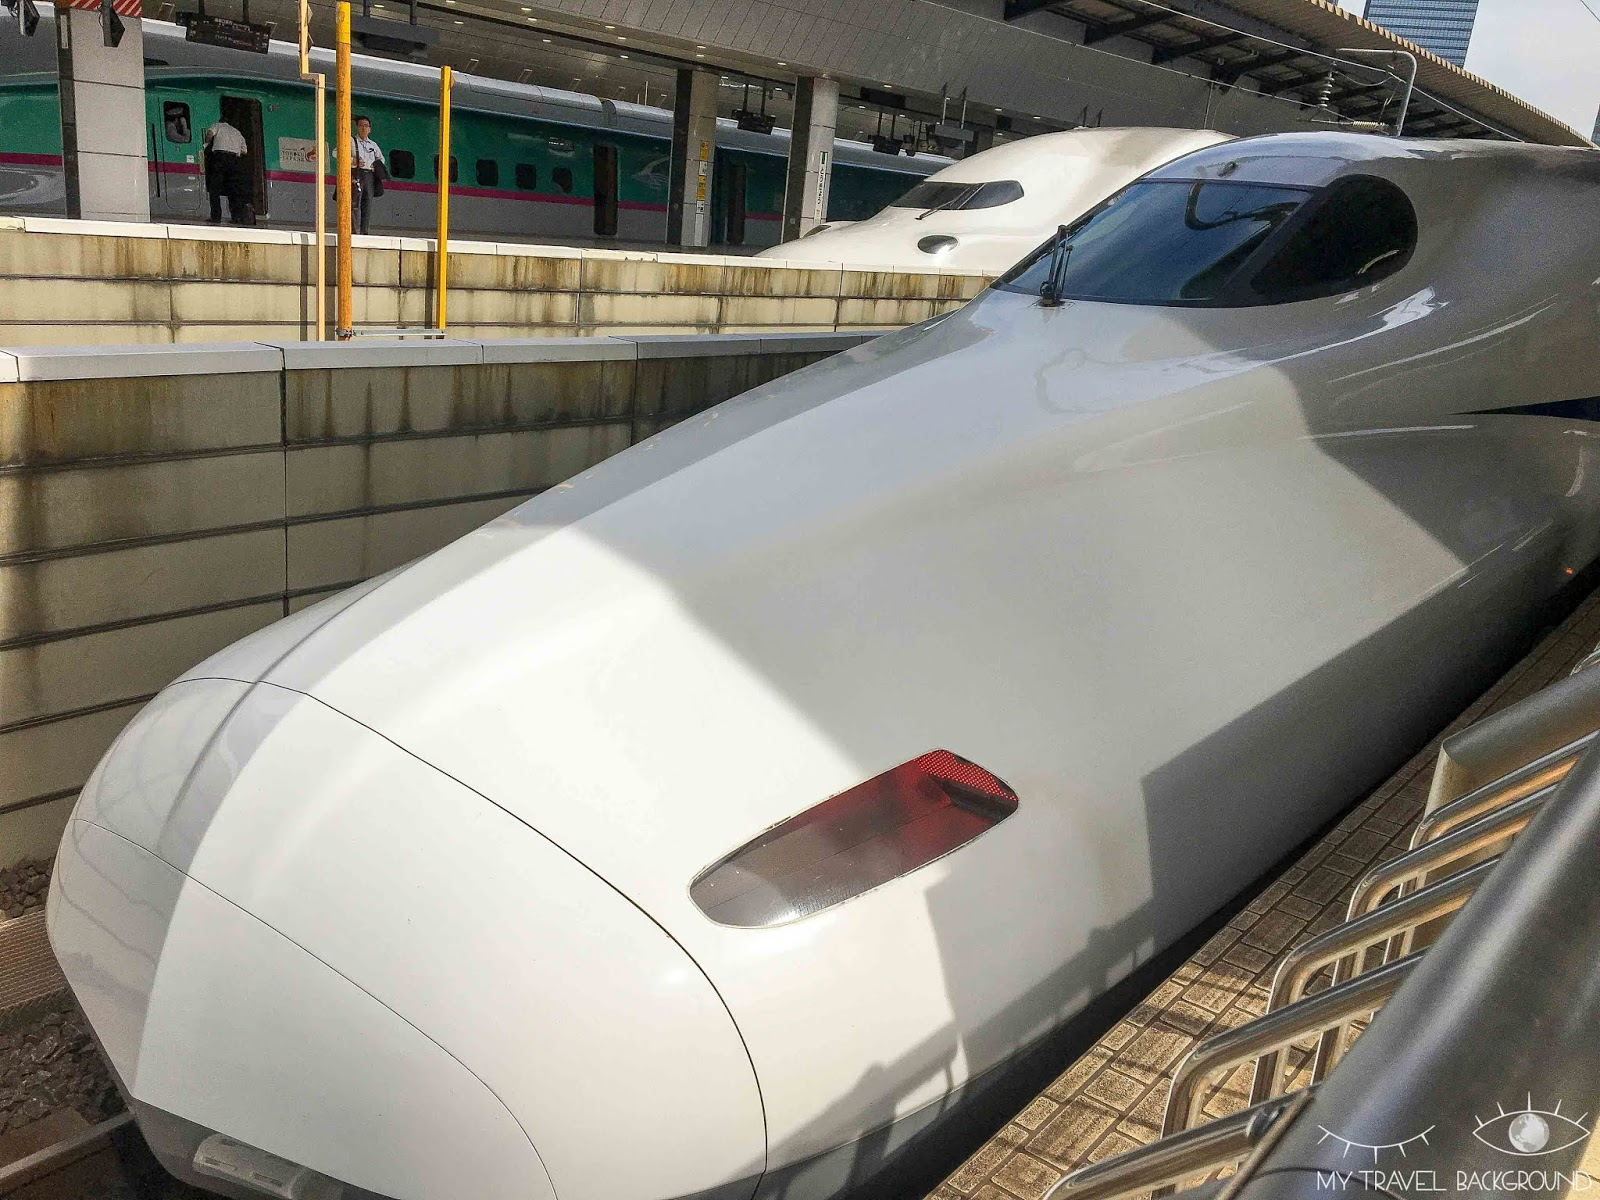 My Travel Background : mon road trip de 14 jours au Japon : itinéraire & infos pratiques - Shinkansen